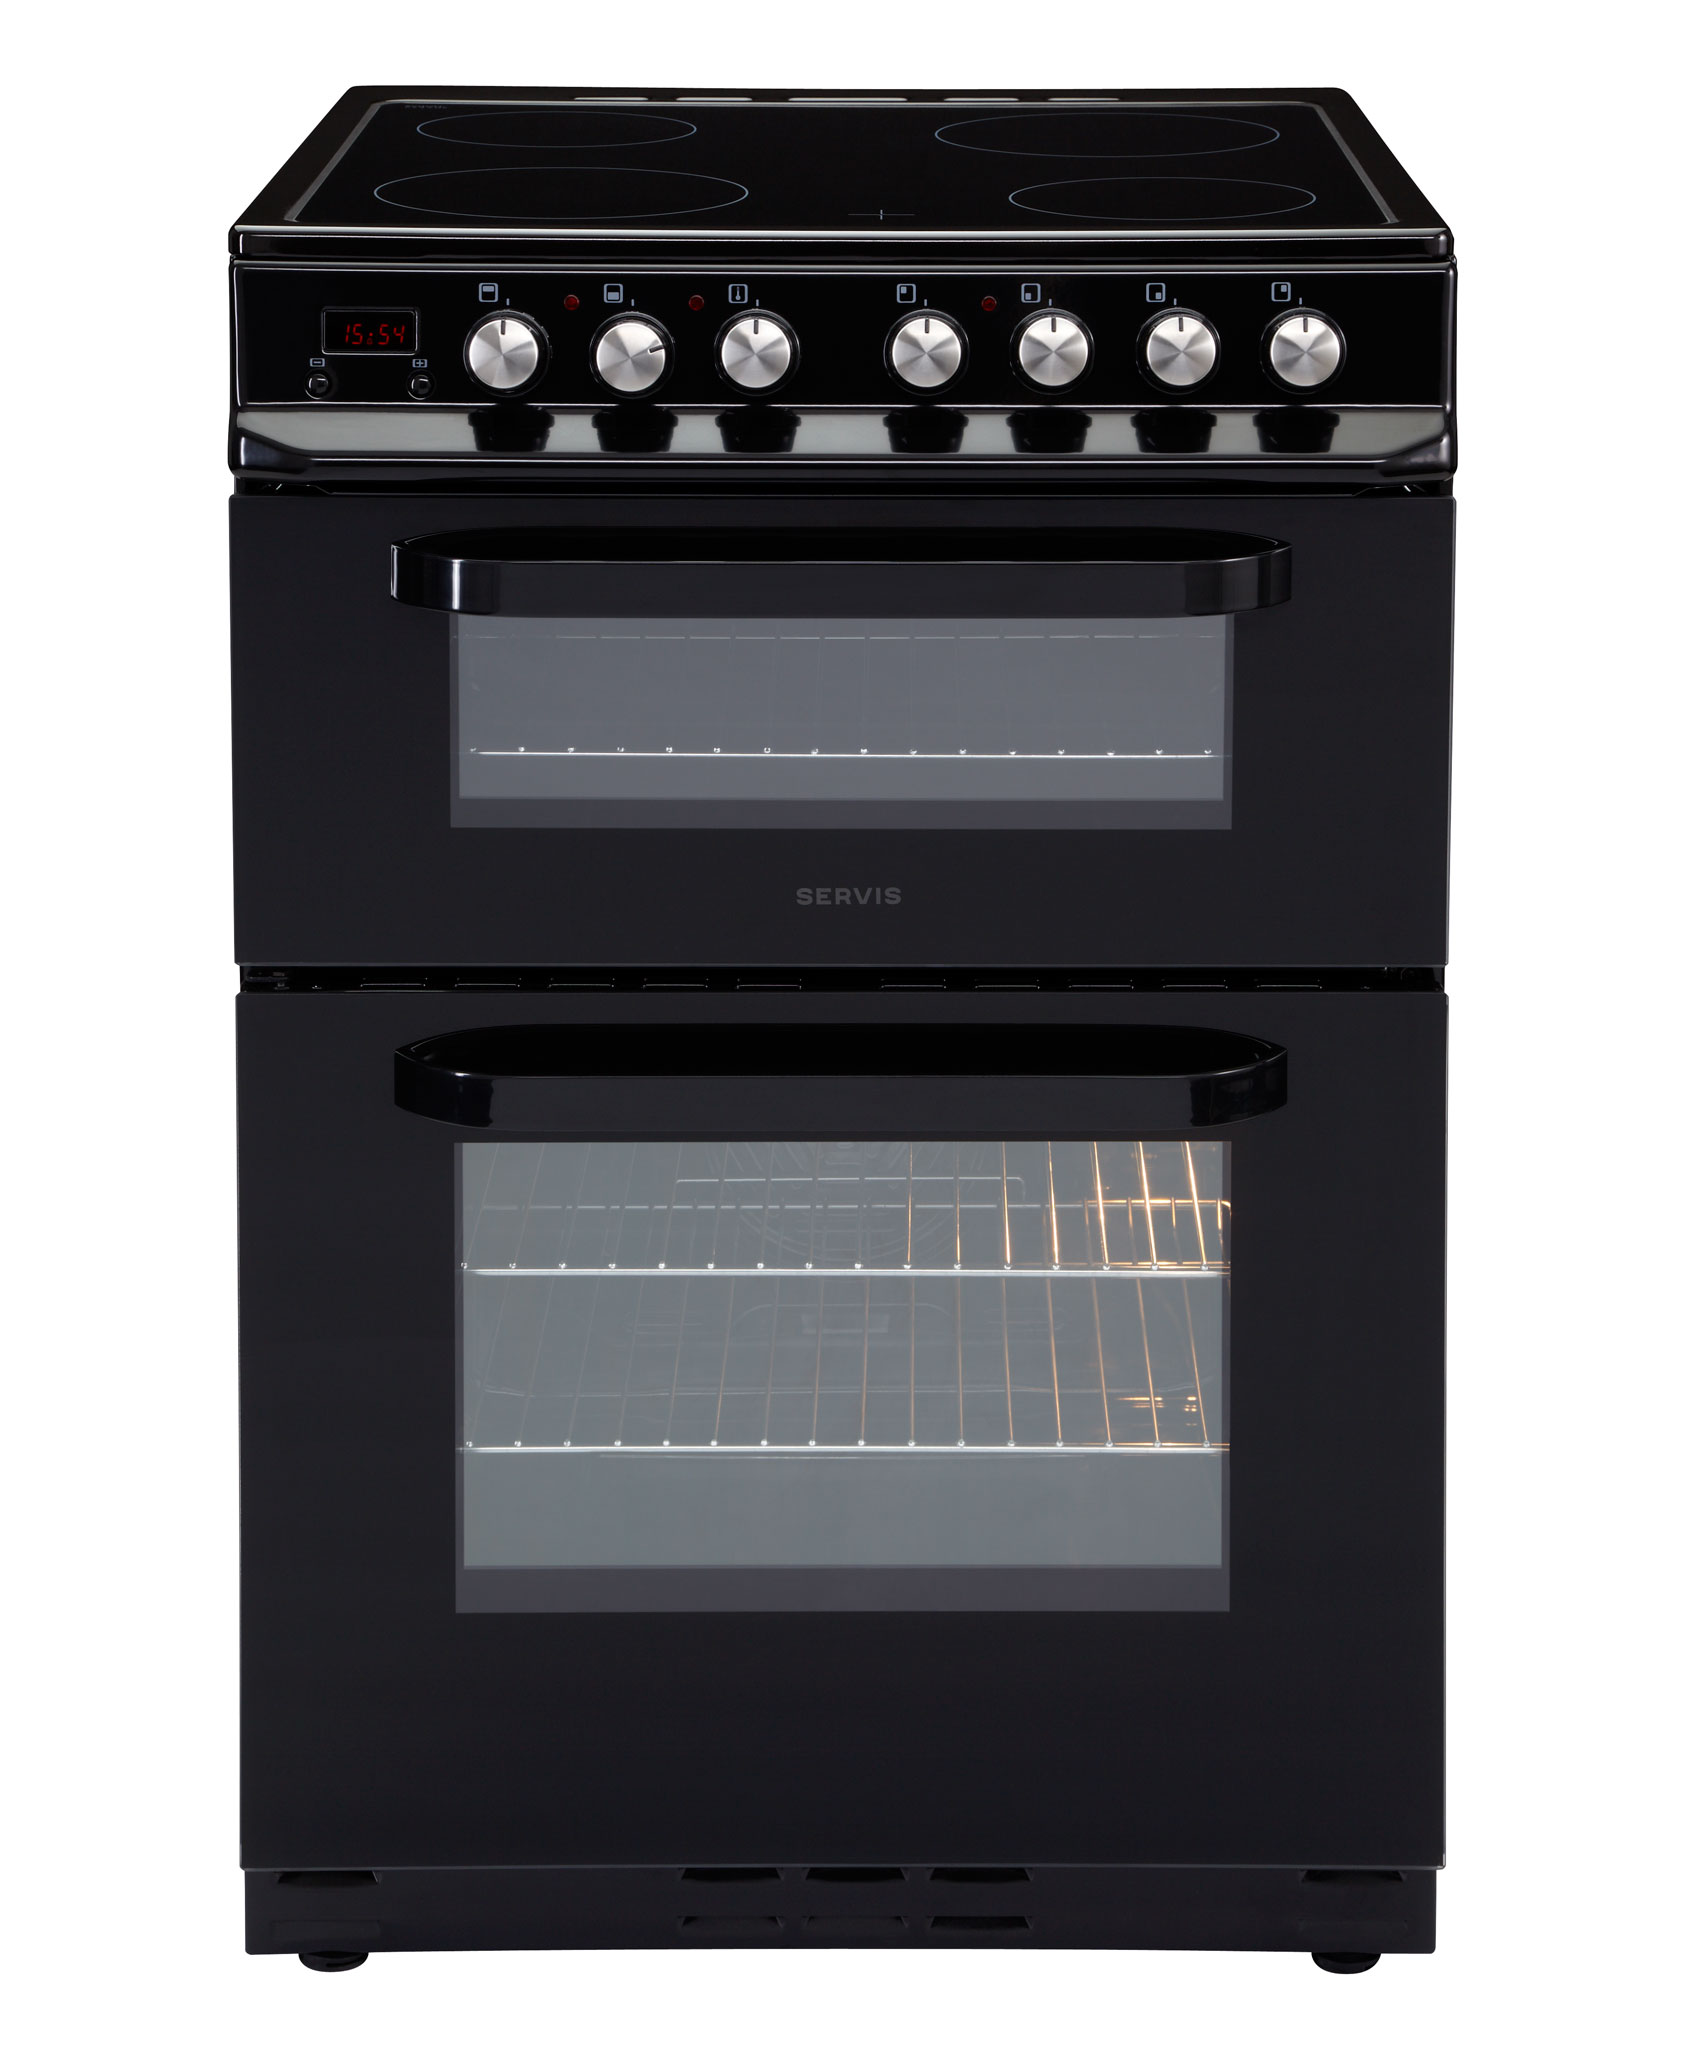 DC60B - Black - Electric Cooker